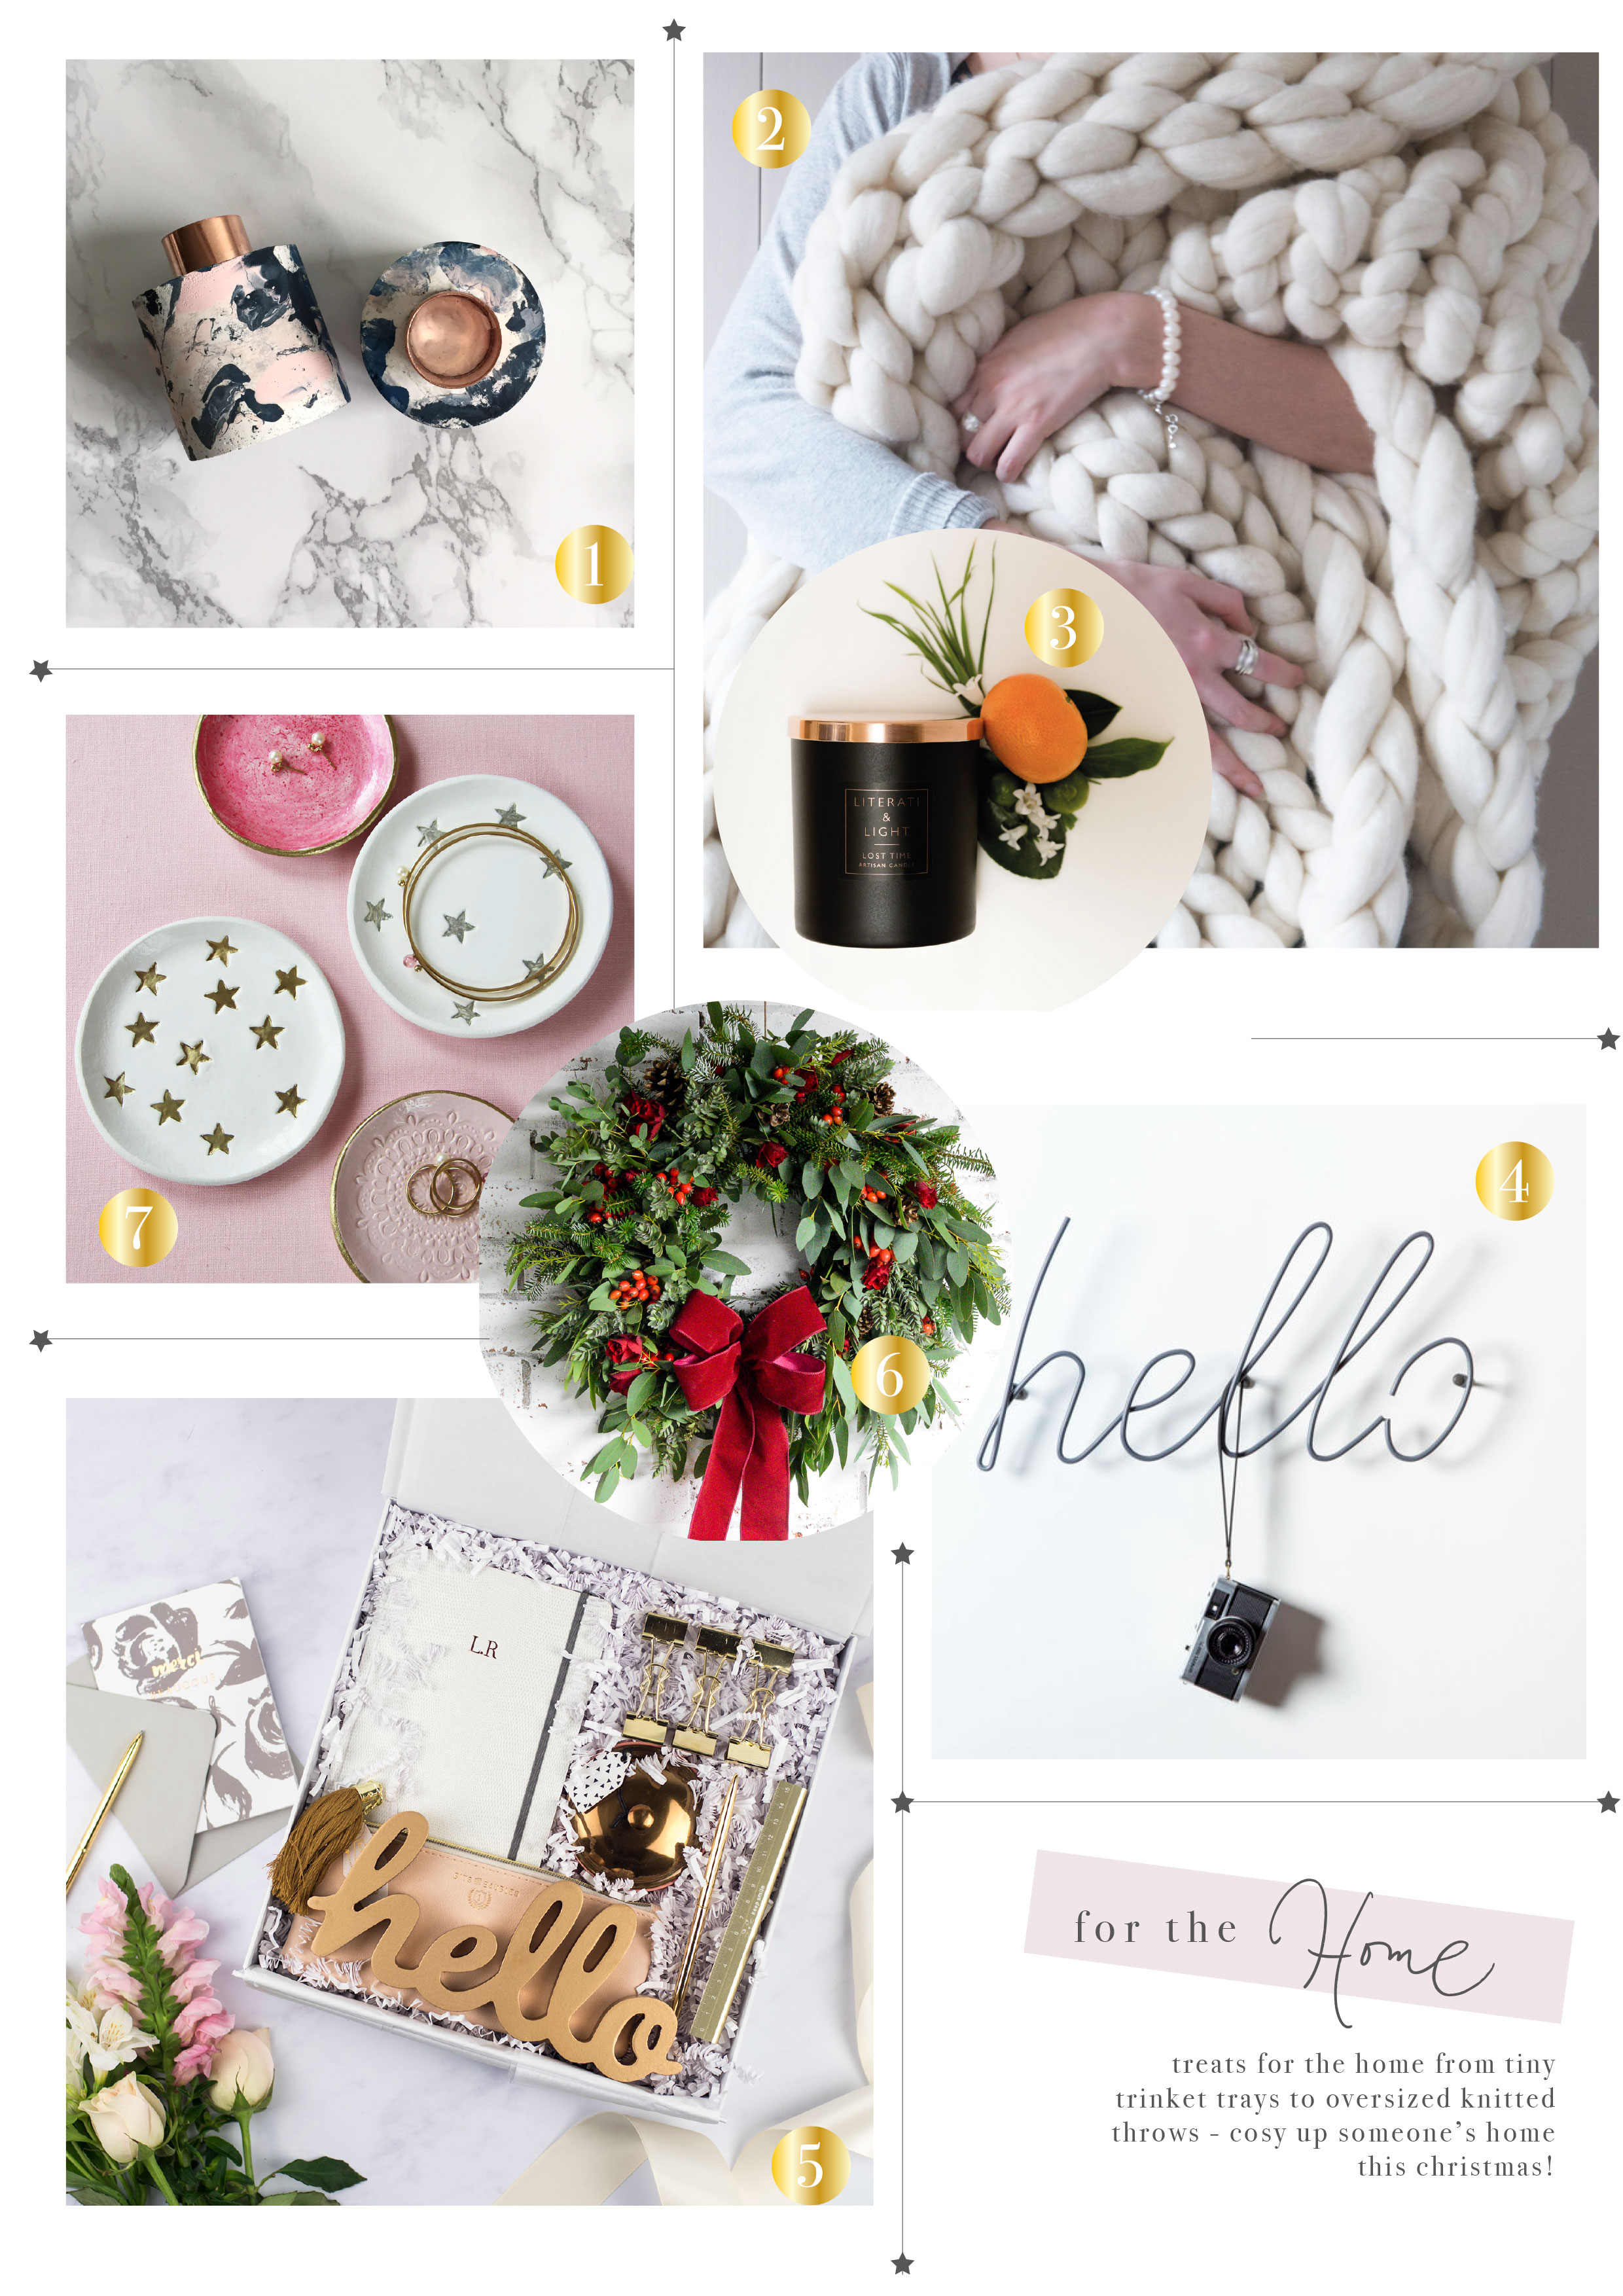 Studio-Seed-Christmas-Gift-Guide---For-The-Home.jpg